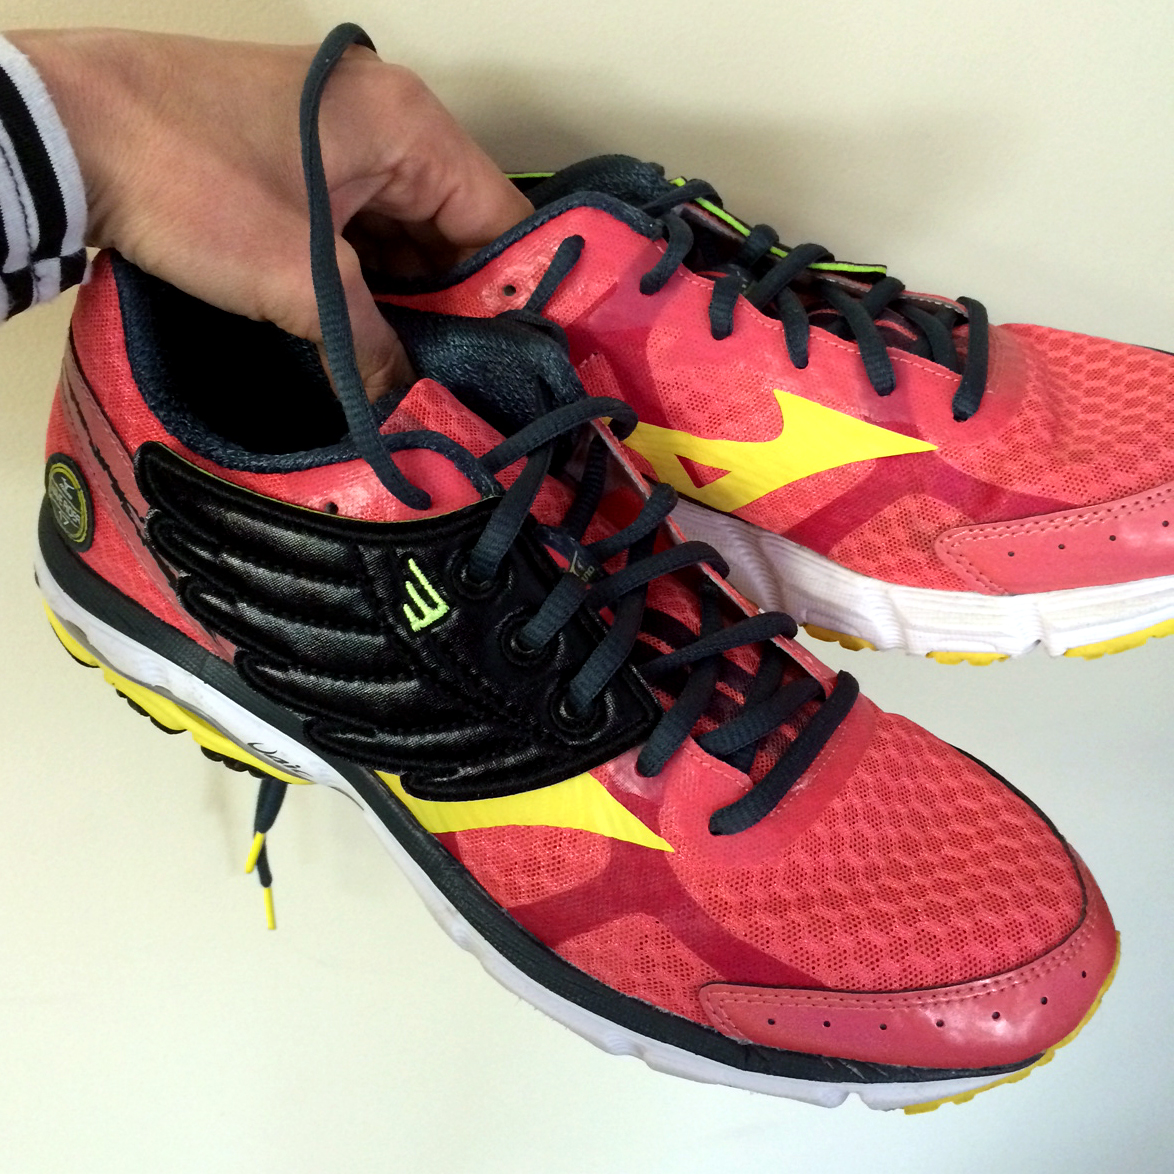 fe6b2b463a As if your running shoes didn t look awesome enough already…SHWING!  Shwings  review   giveaway!  – Run Salt Run